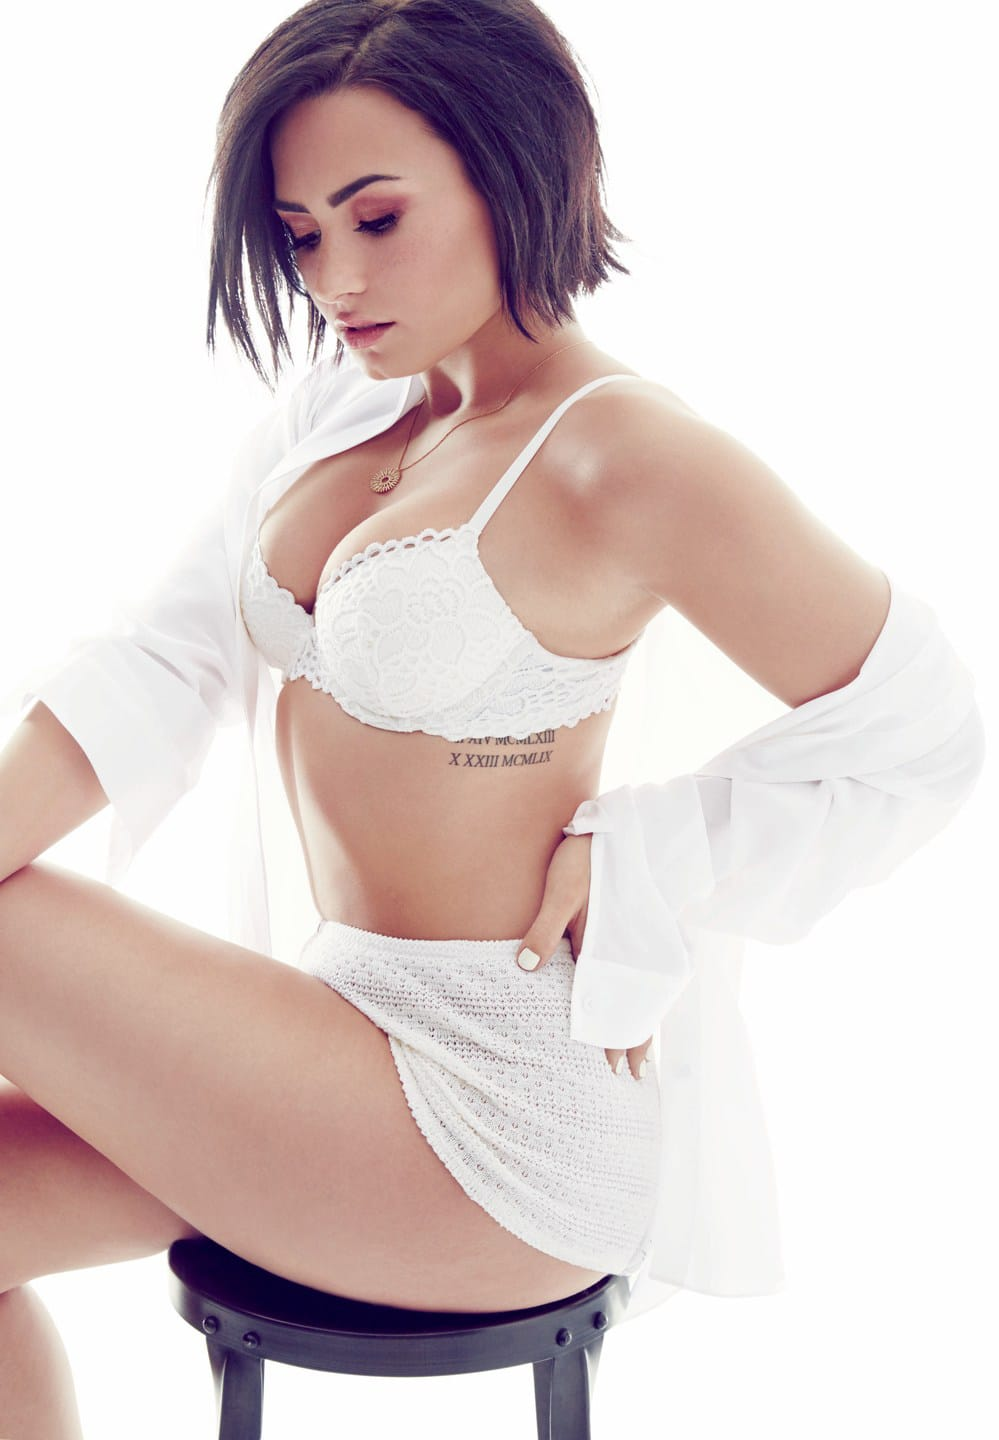 Demi Lovato showing off her hot curves in white bra and booty shorts